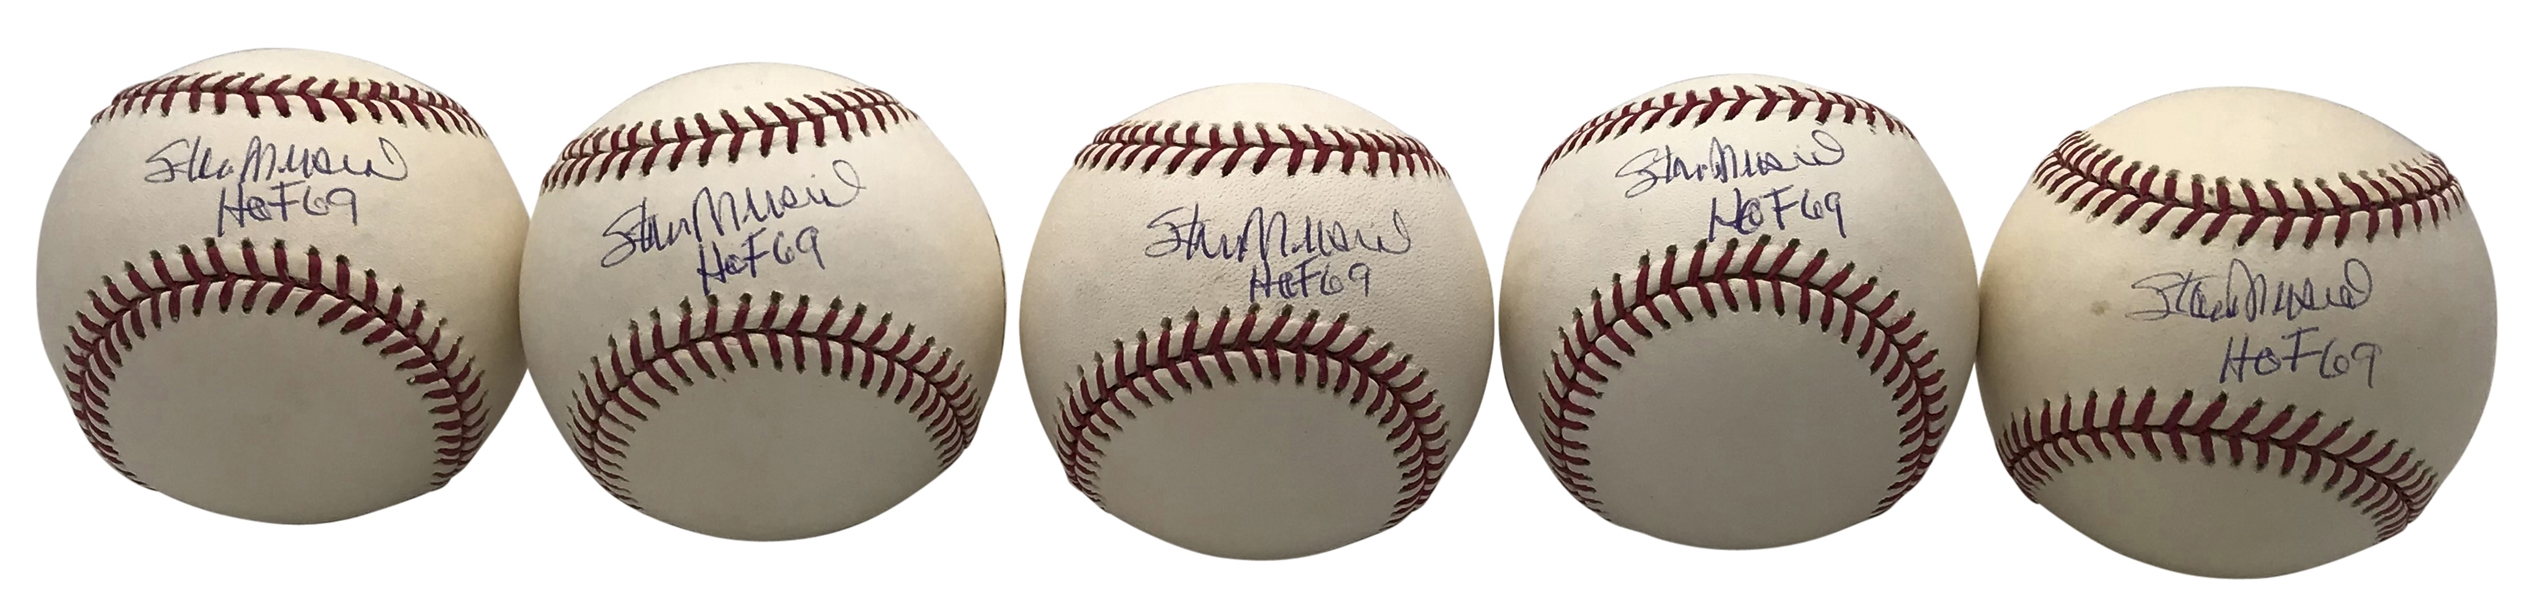 Lot of Five (5) Stan Musial Signed & Inscribed HOF 69 OML Baseballs (Tristar & Beckett/BAS)